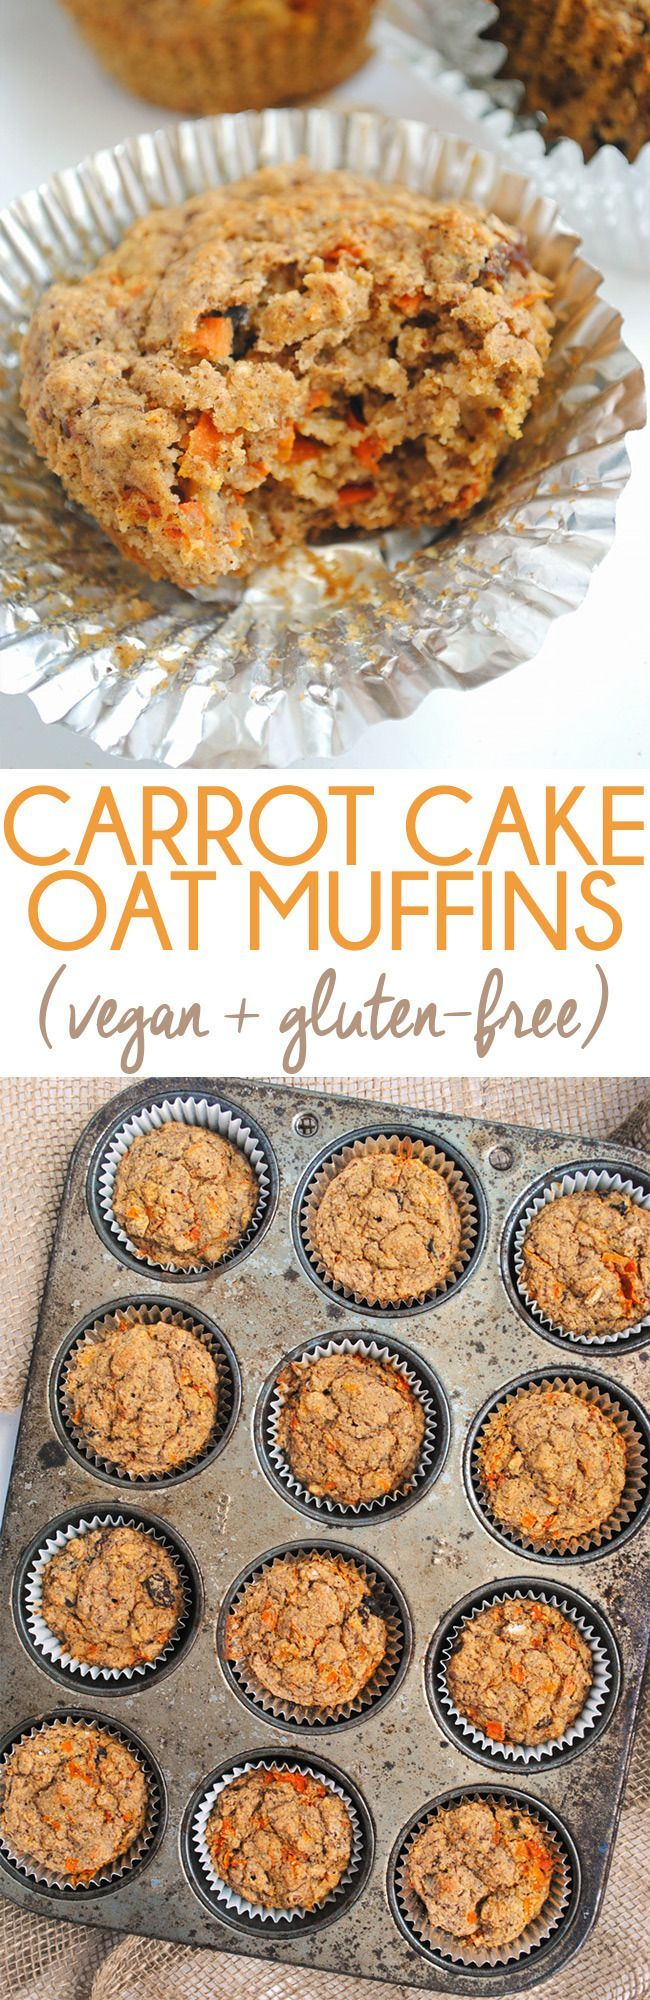 Tender, packed with carrots, and sweetly spiced, these vegan + gluten-free carrot cake oat muffins make a great grab-and-go breakfast or snack!